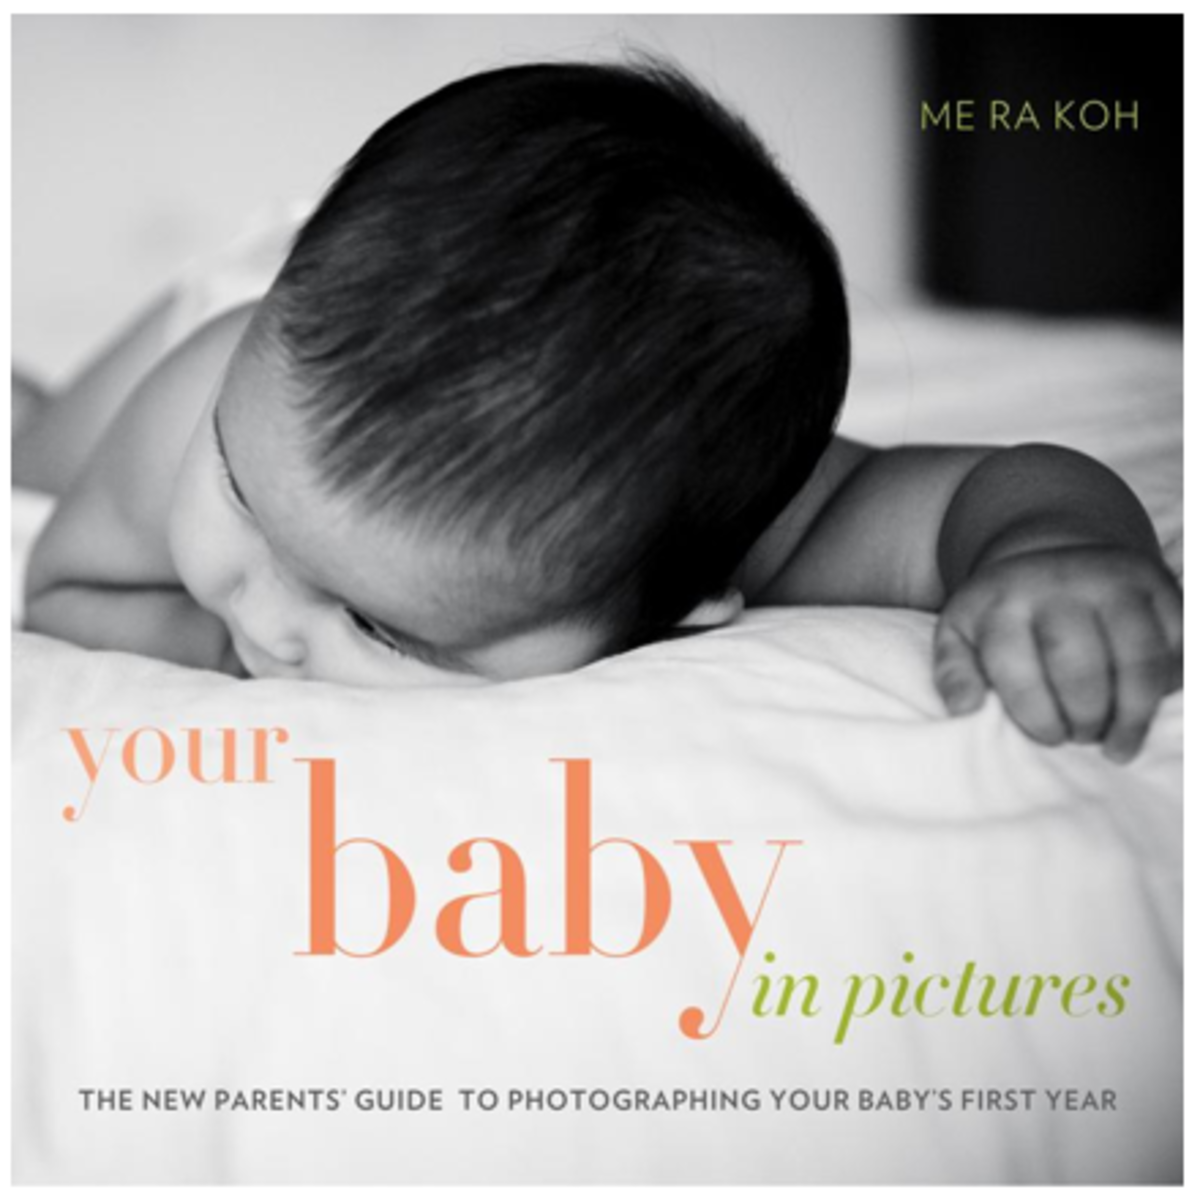 Your Baby in Pictures by Me Ra Koh